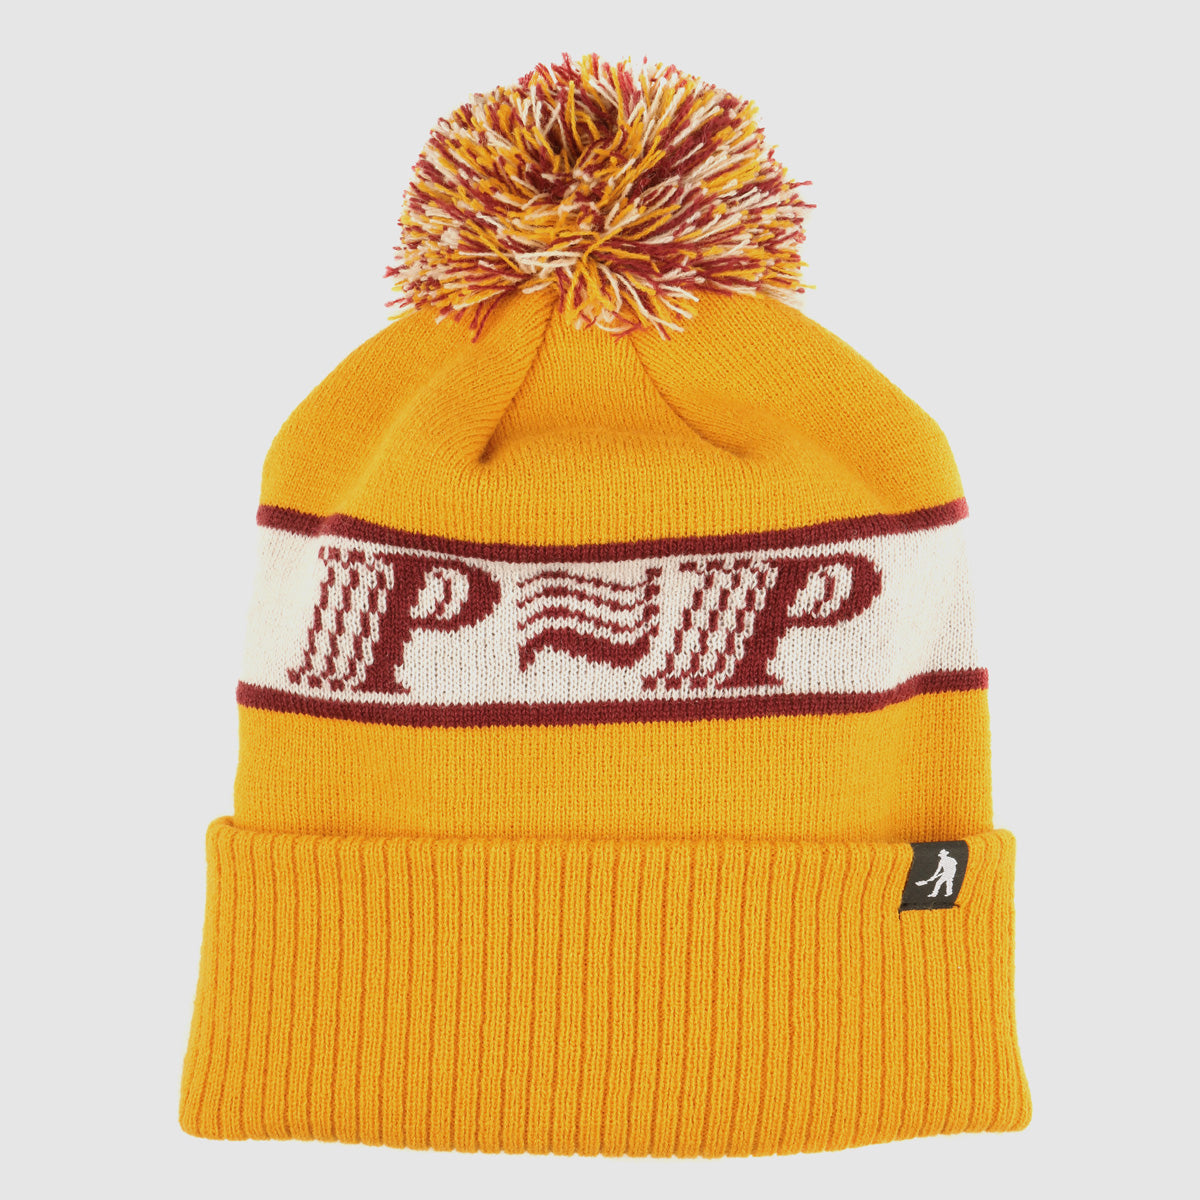 "PASS~PORT ""PPP~PPP"" POM BEANIE YELLOW"